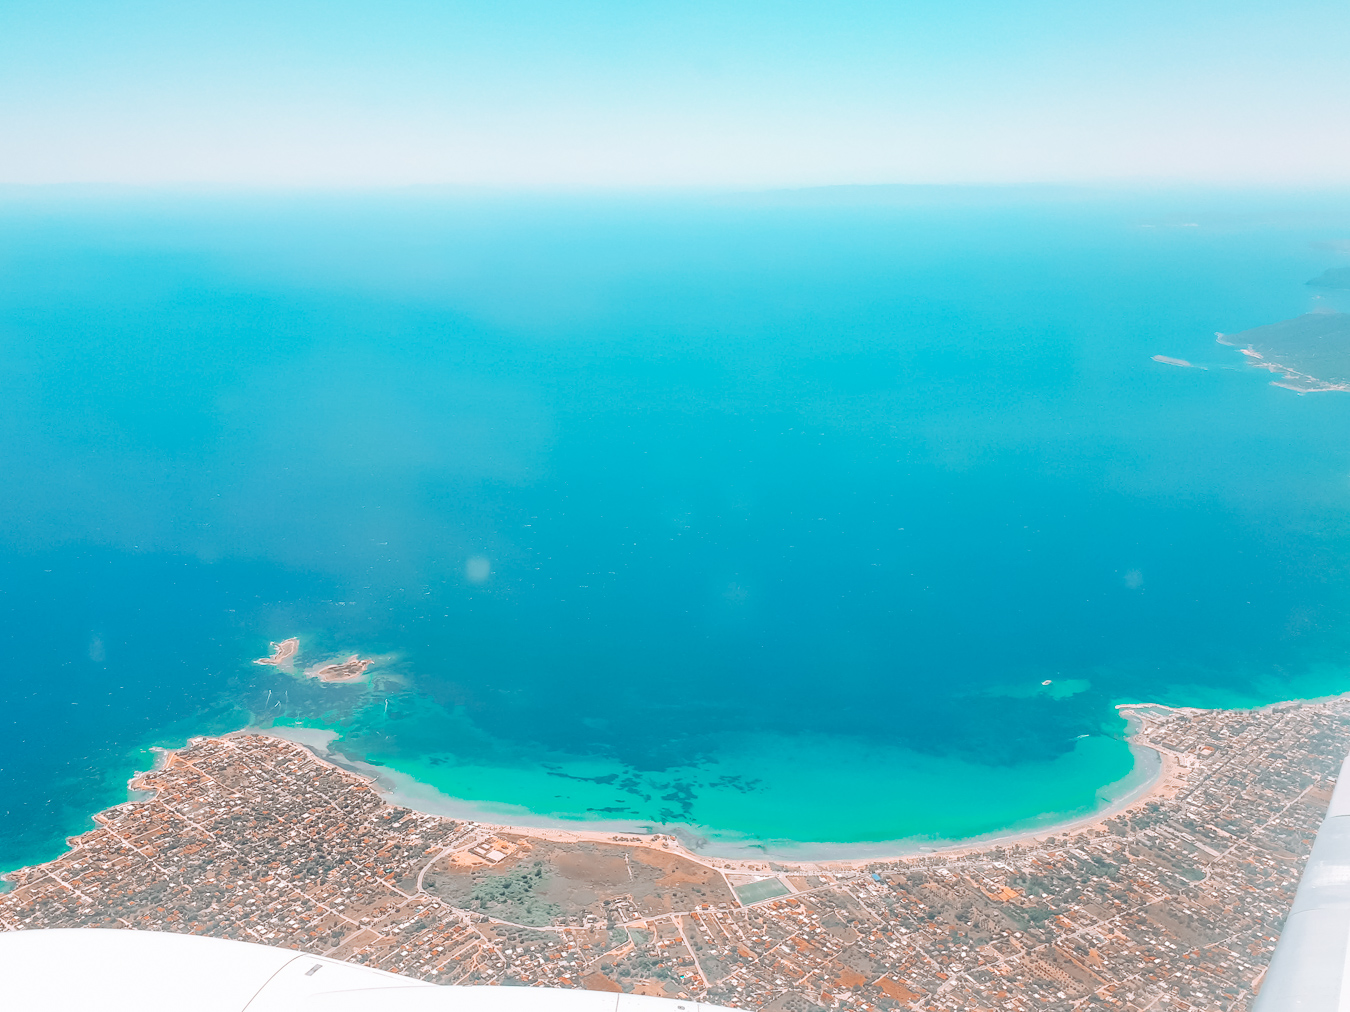 Greece from an airplane